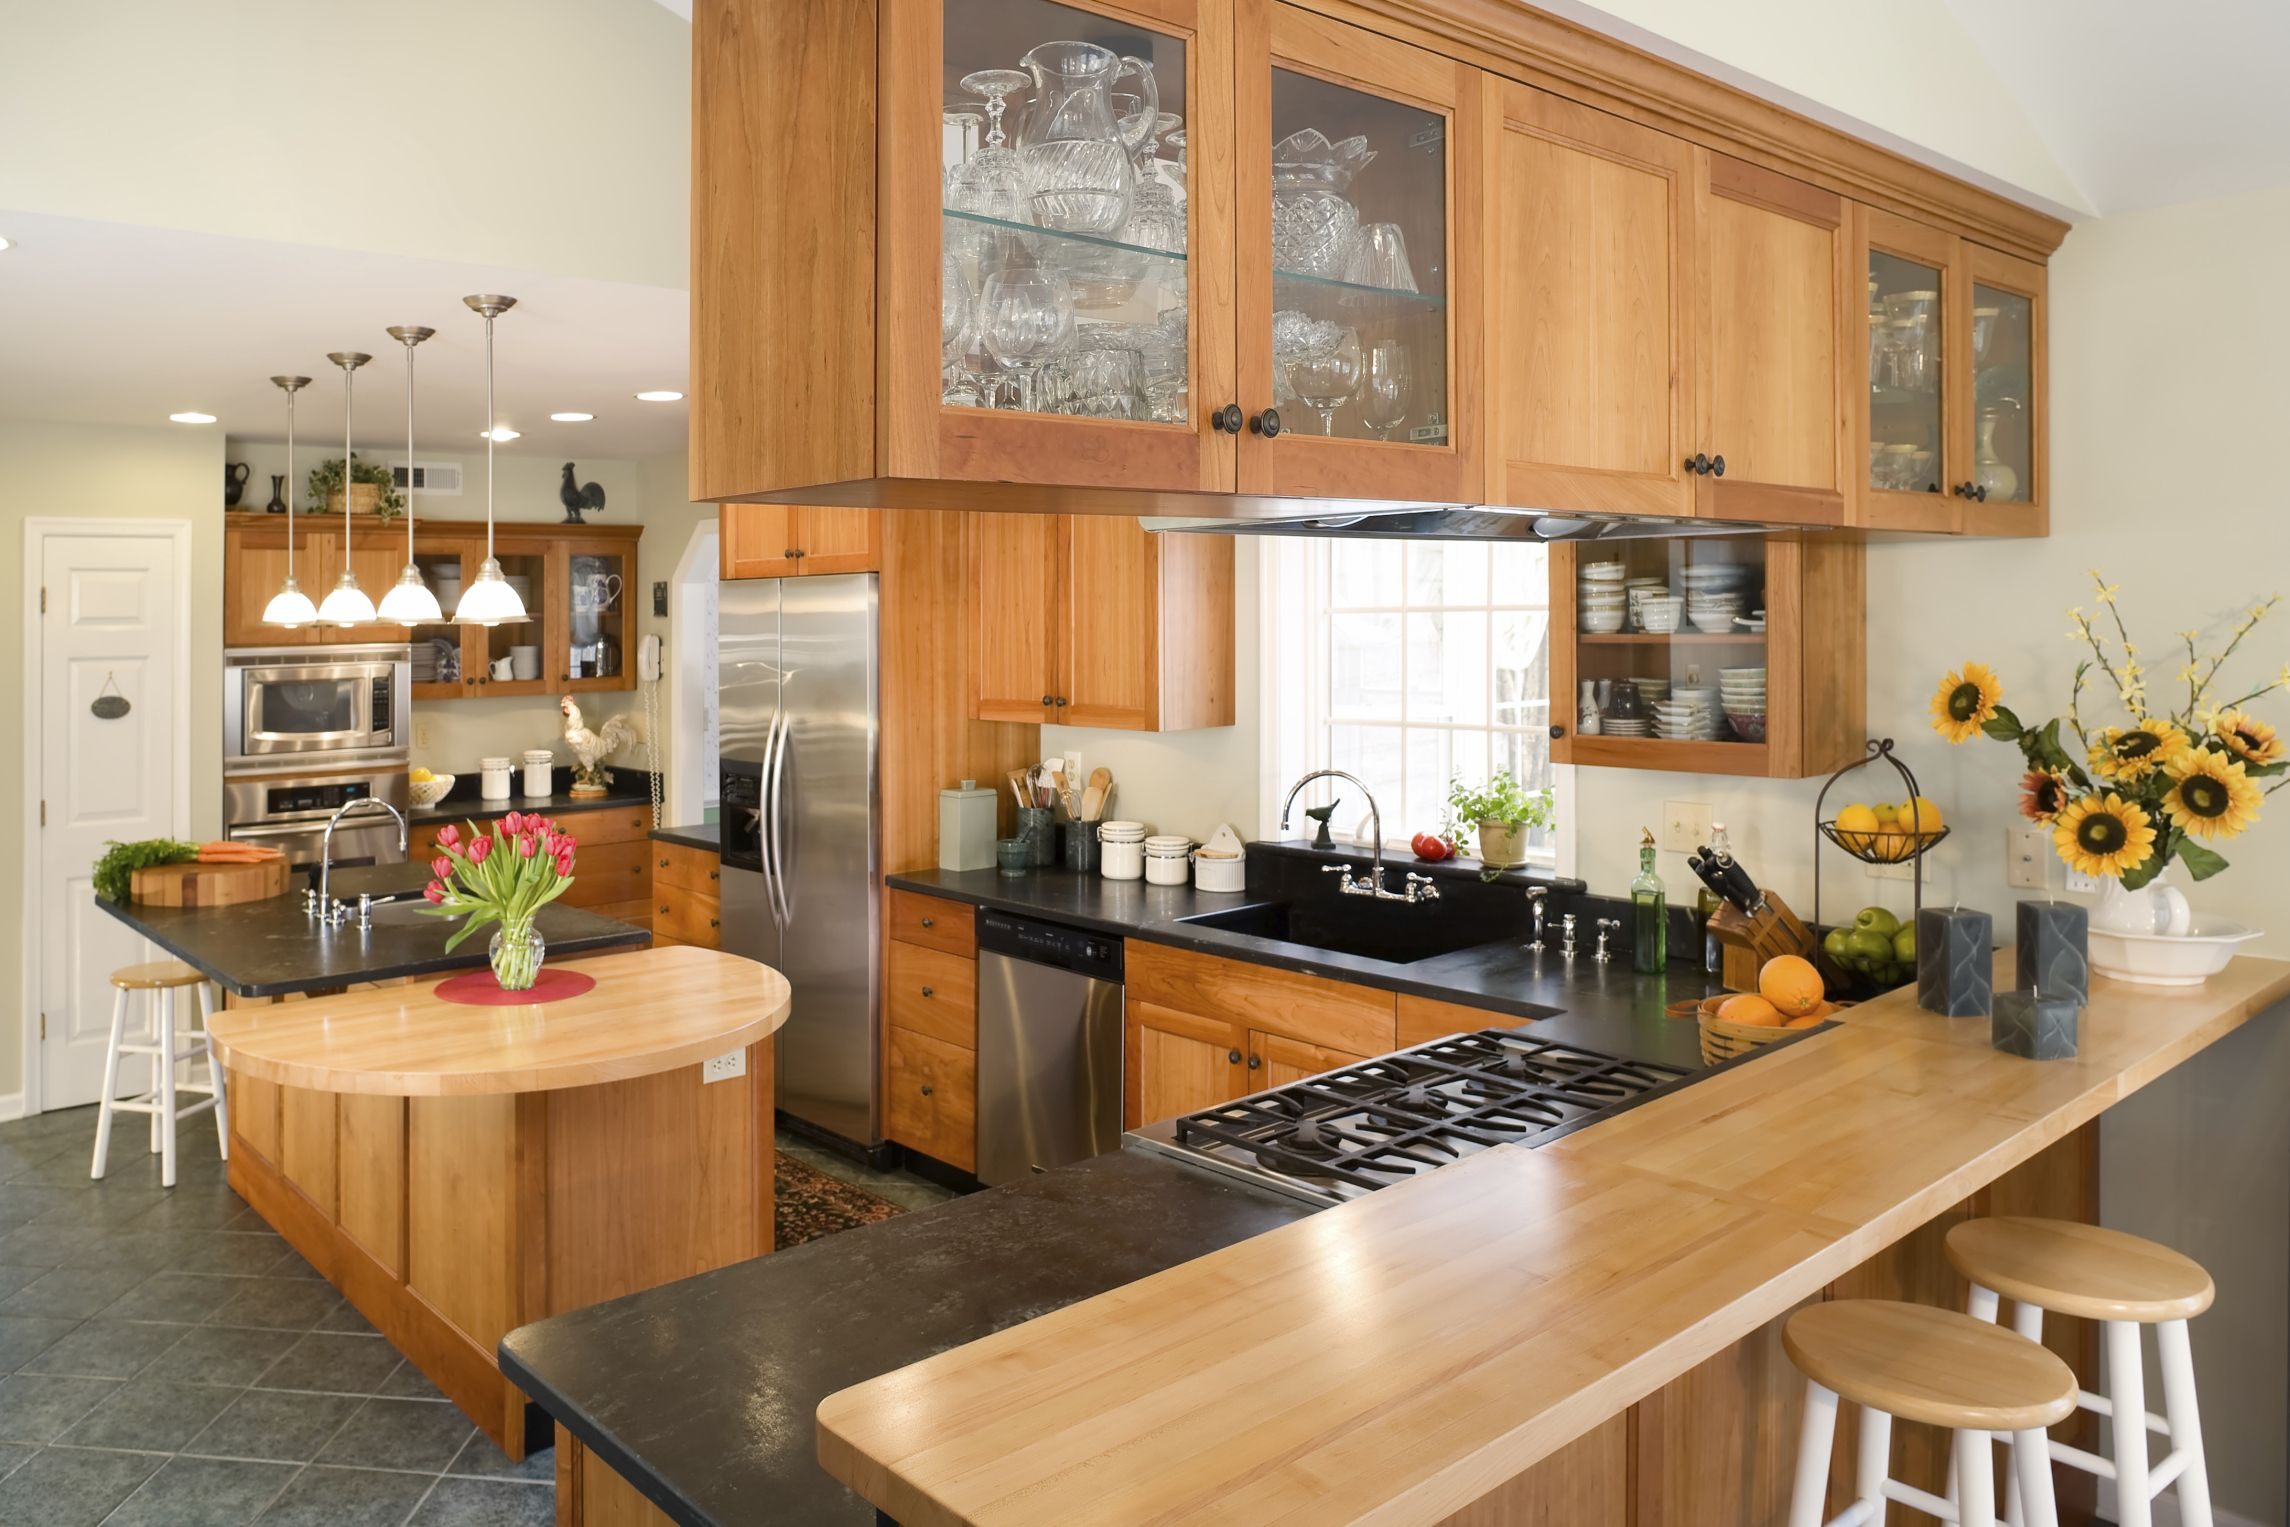 What Ceramic Tile Matches Honey Oak (With images